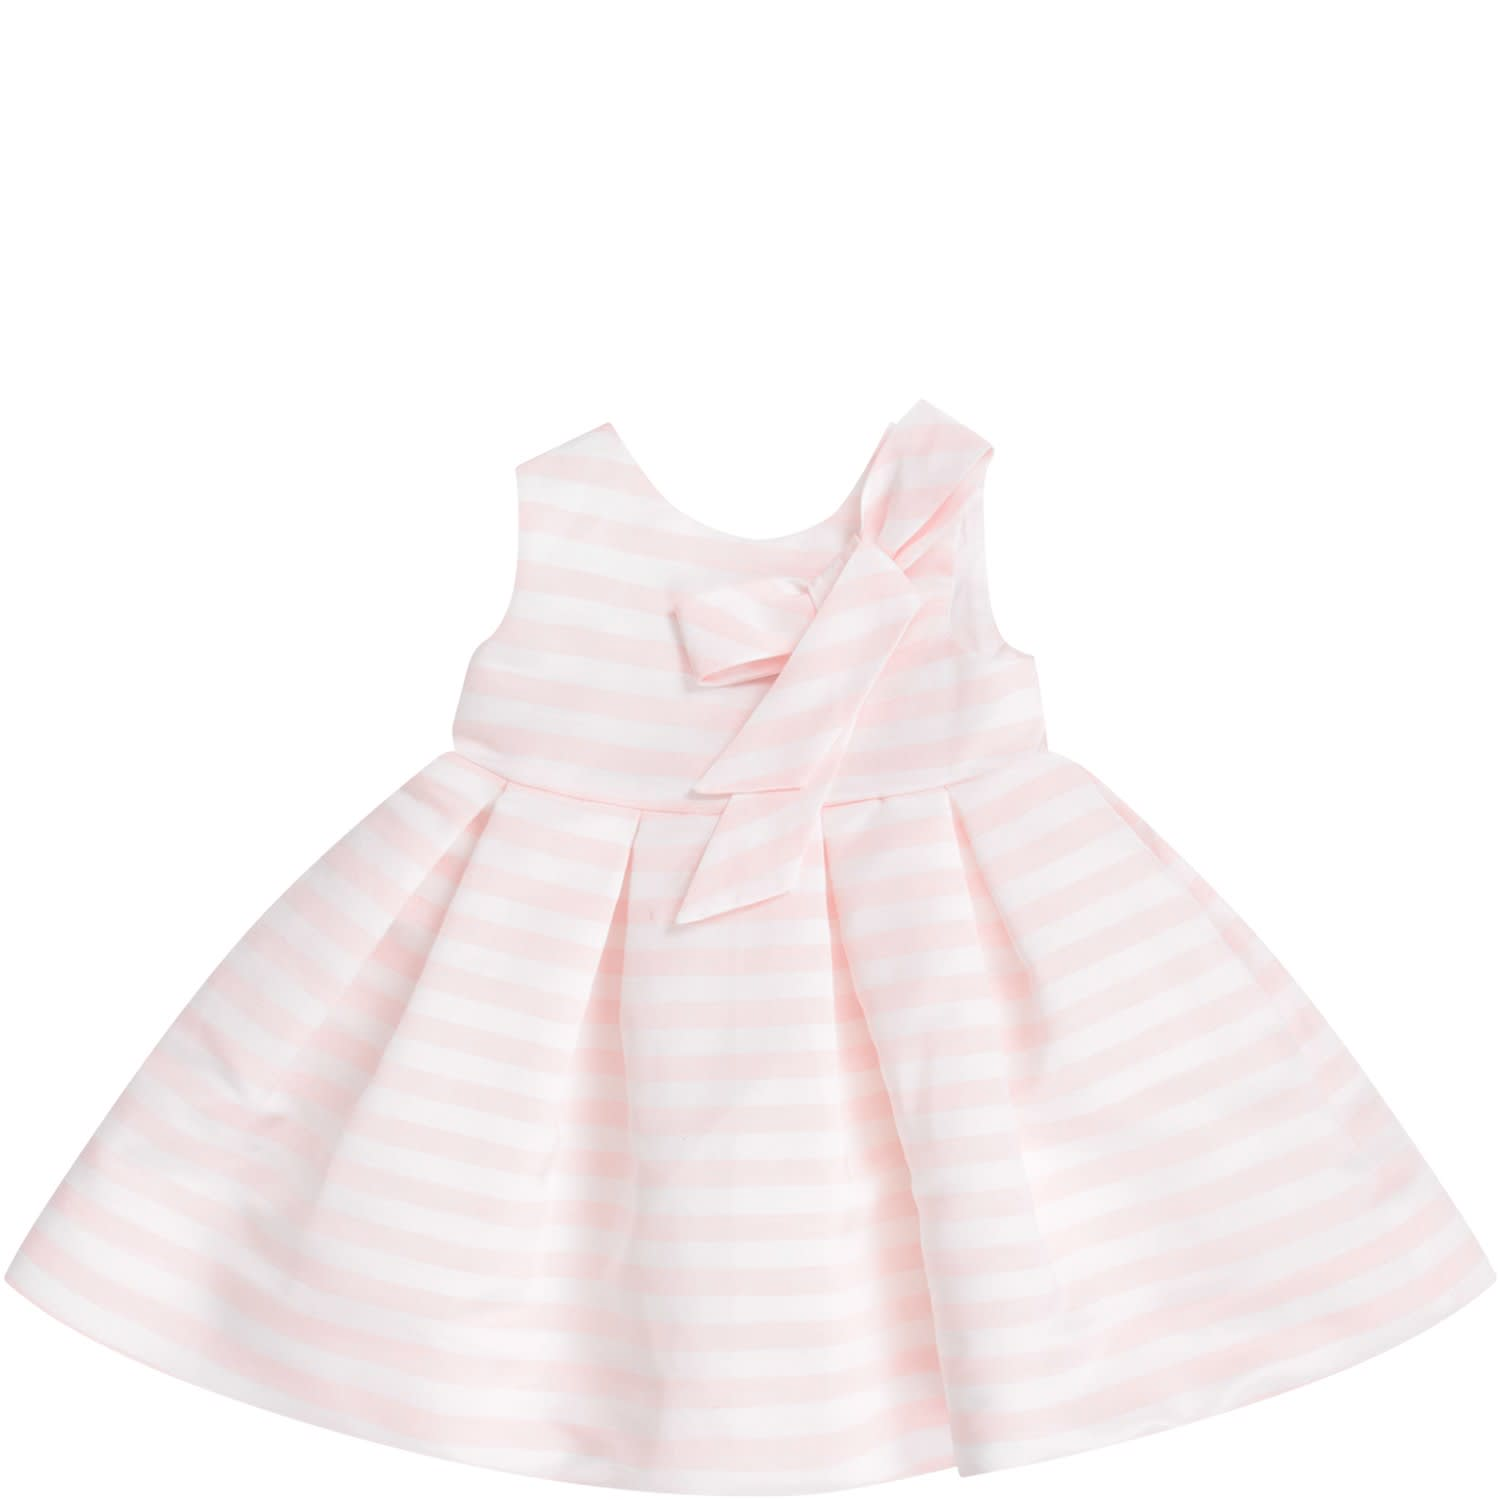 Little Bear White And Pink Babygirl Dress With Bow